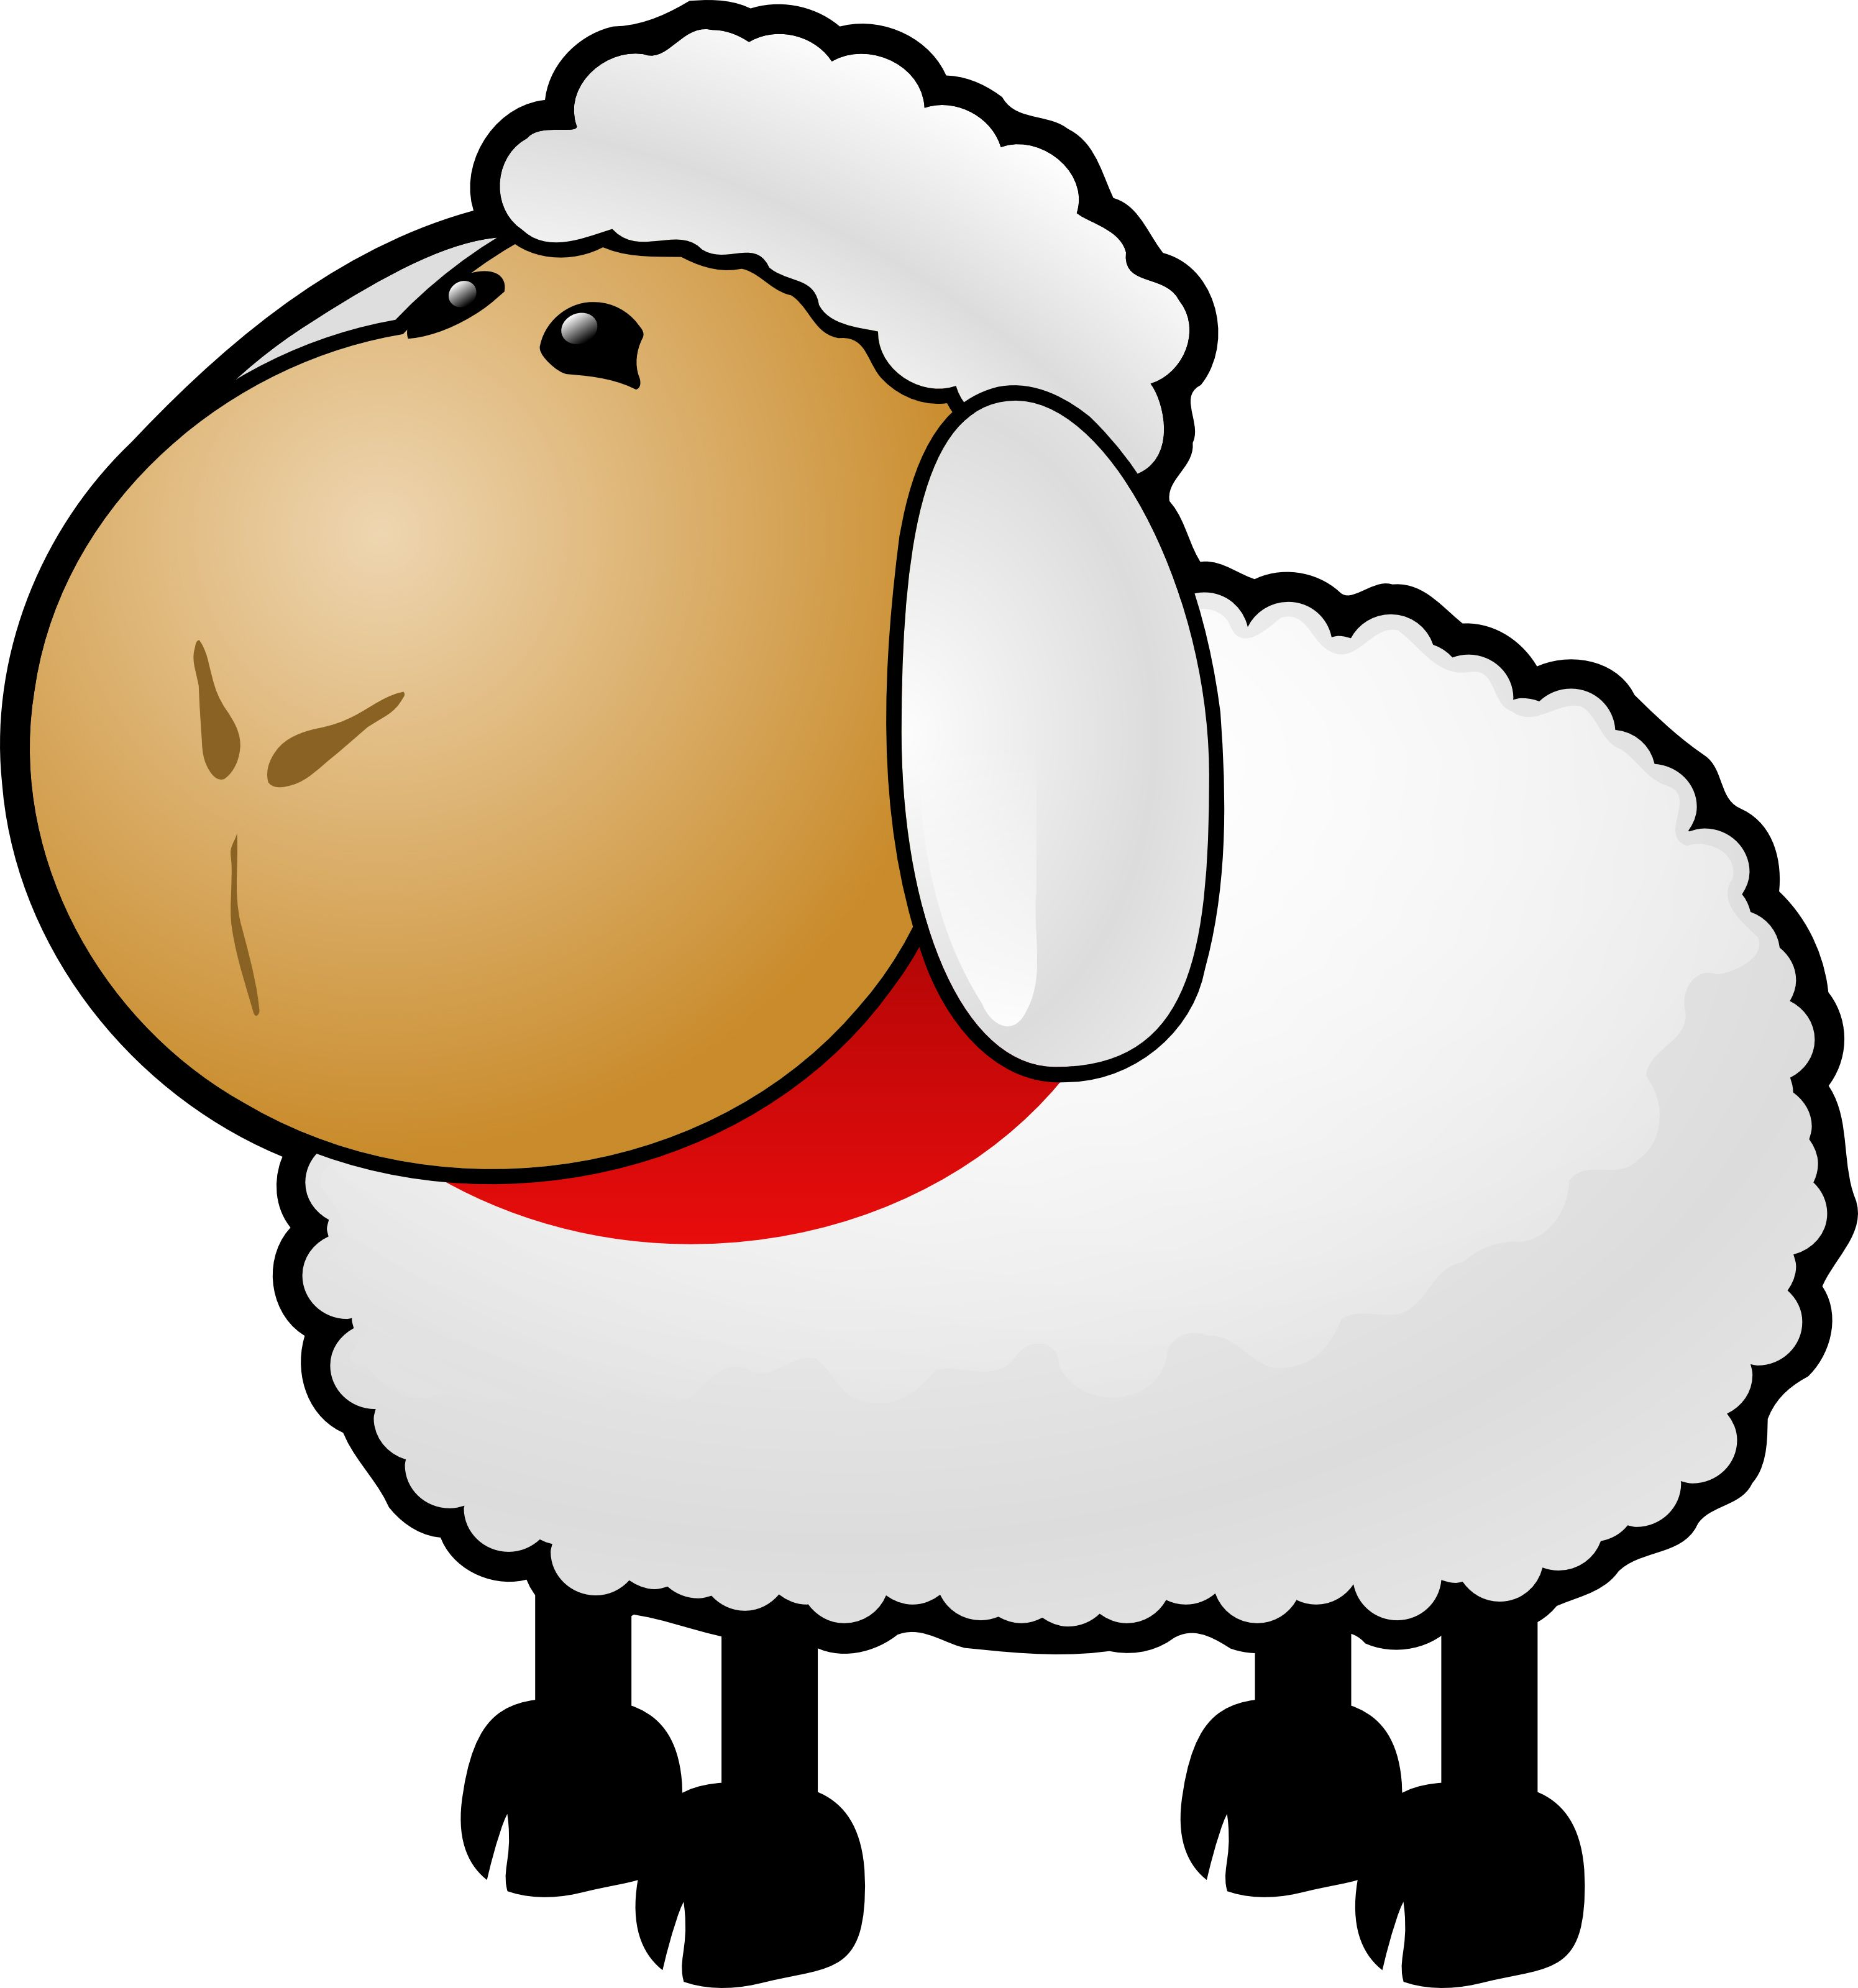 2990x3200 Free Cartoon Sheep Clipart 2015 Sheep Goat